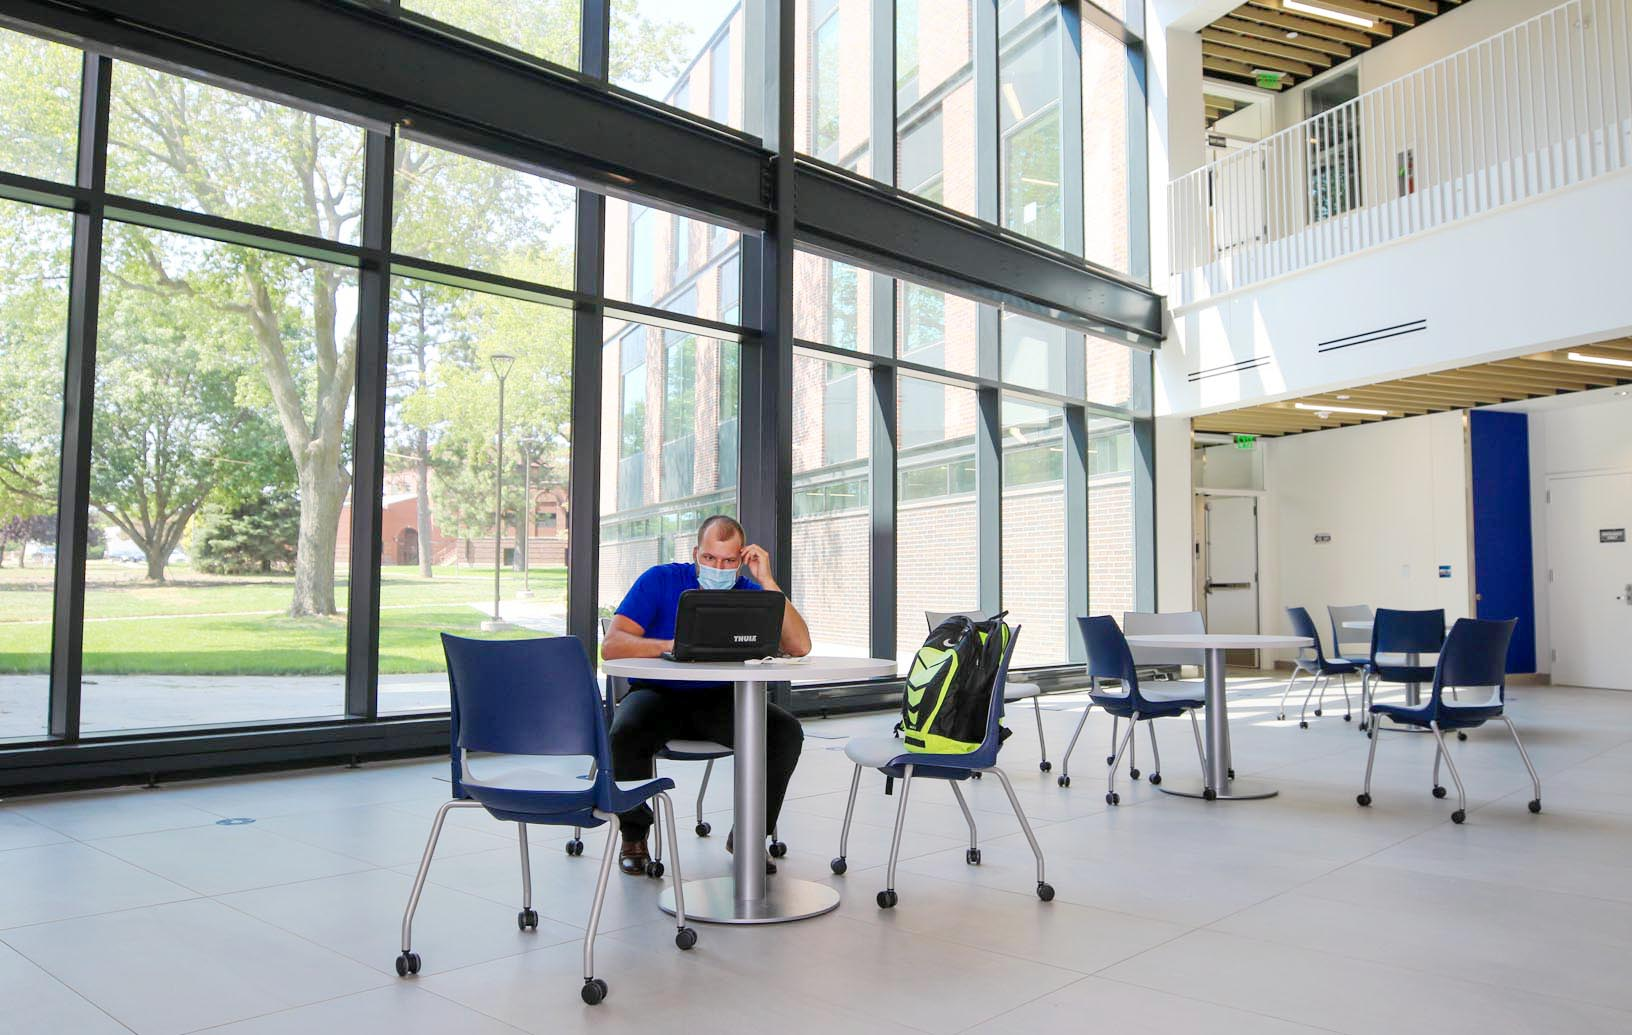 Discovery Hall features plenty of natural lighting and several common areas where students can study or relax between classes.